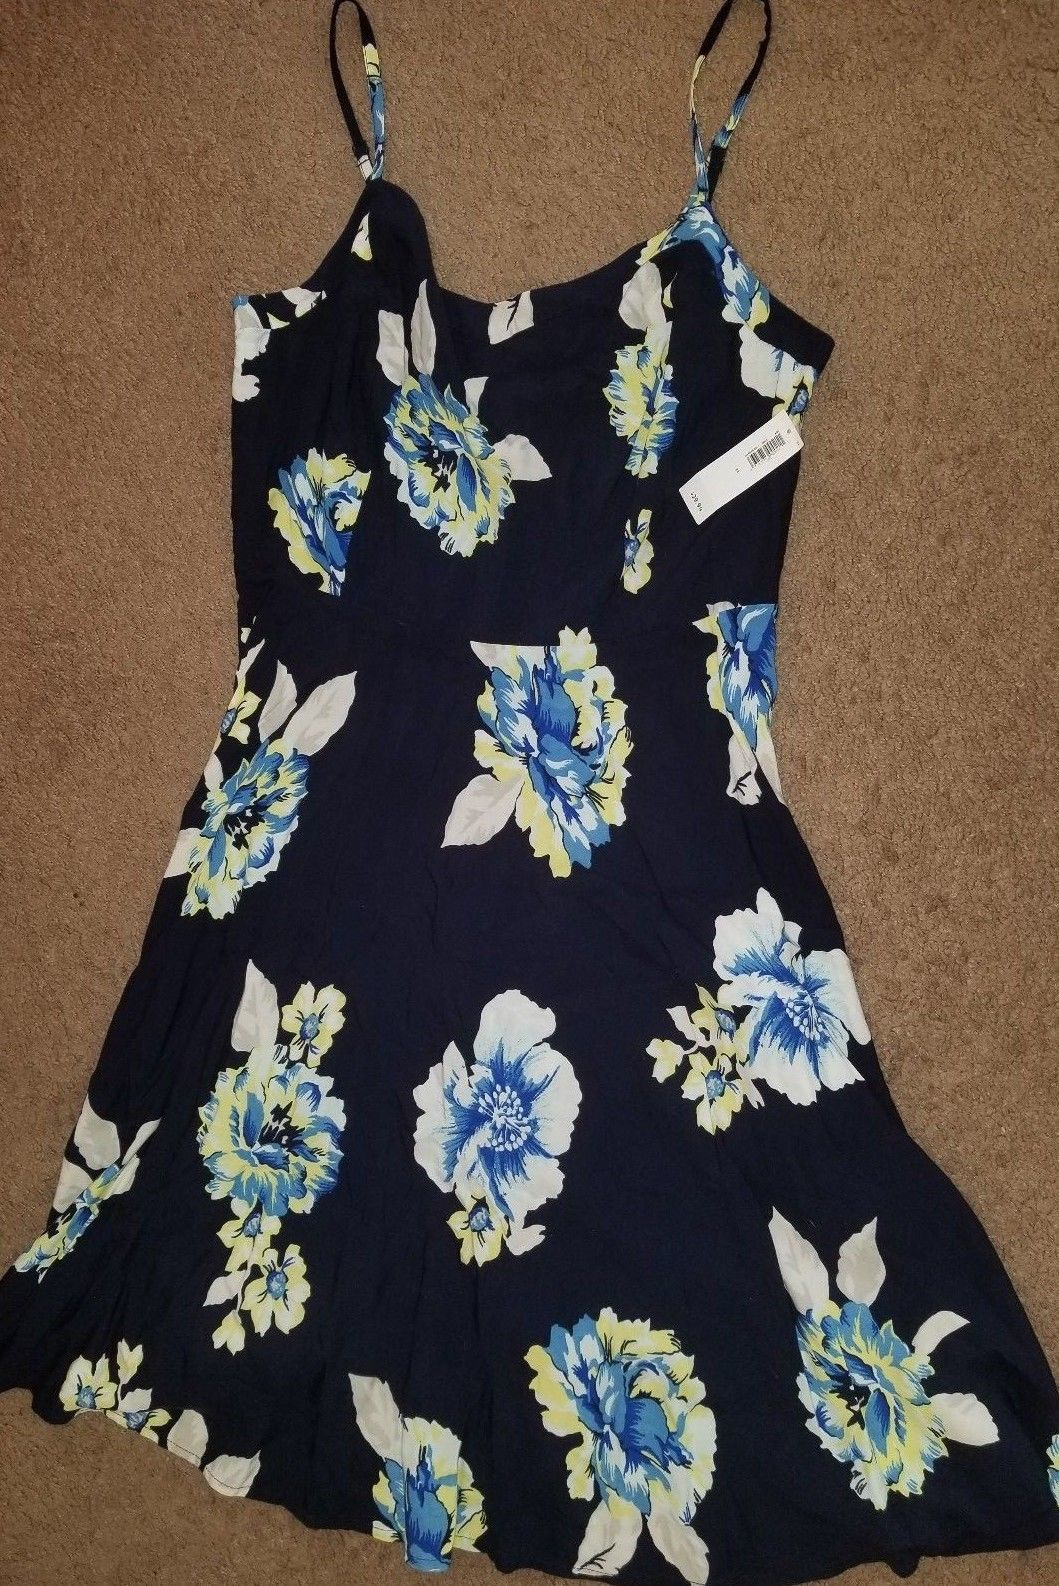 NEW Old Navy cami swing dress women's size M, NWT